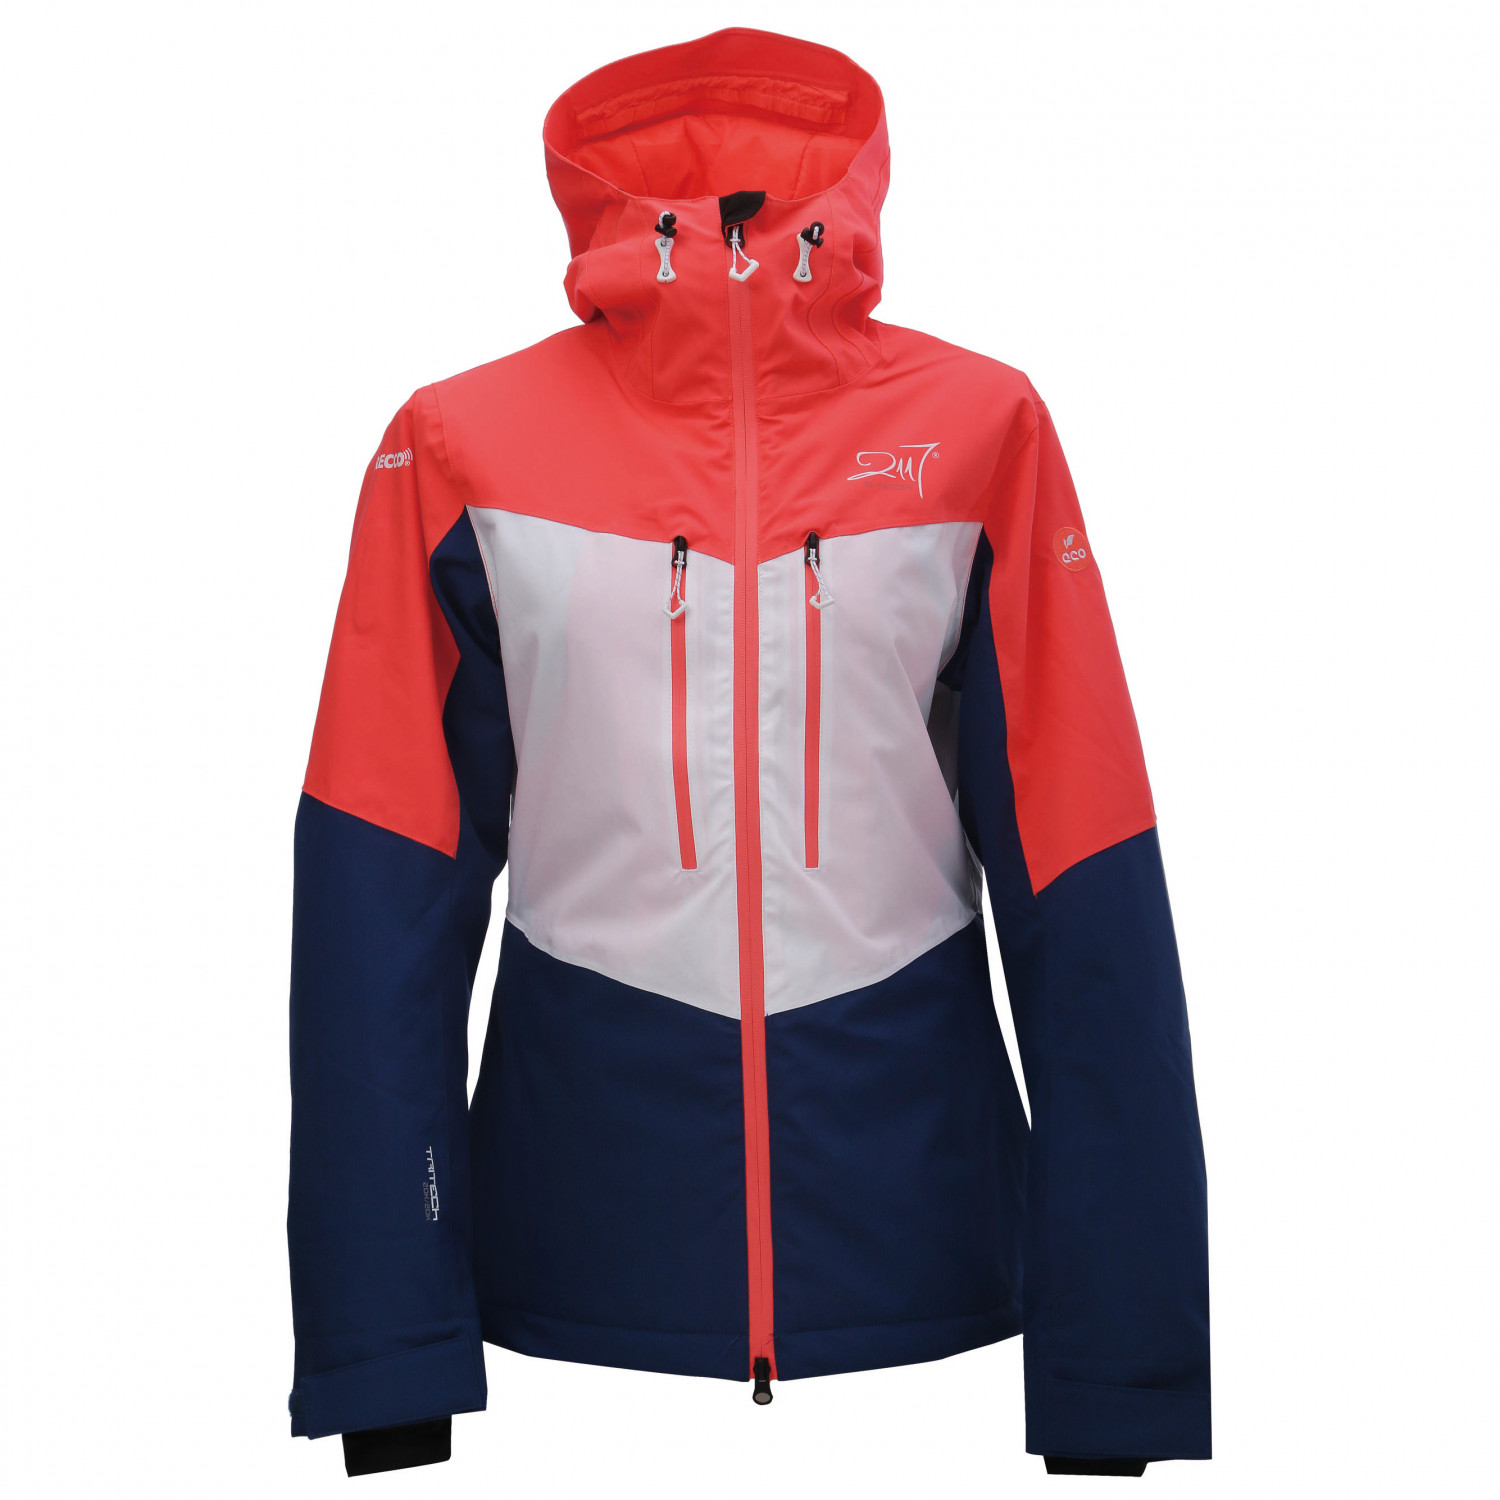 2117 of Sweden Women's Ludvika Jacket Skijacke